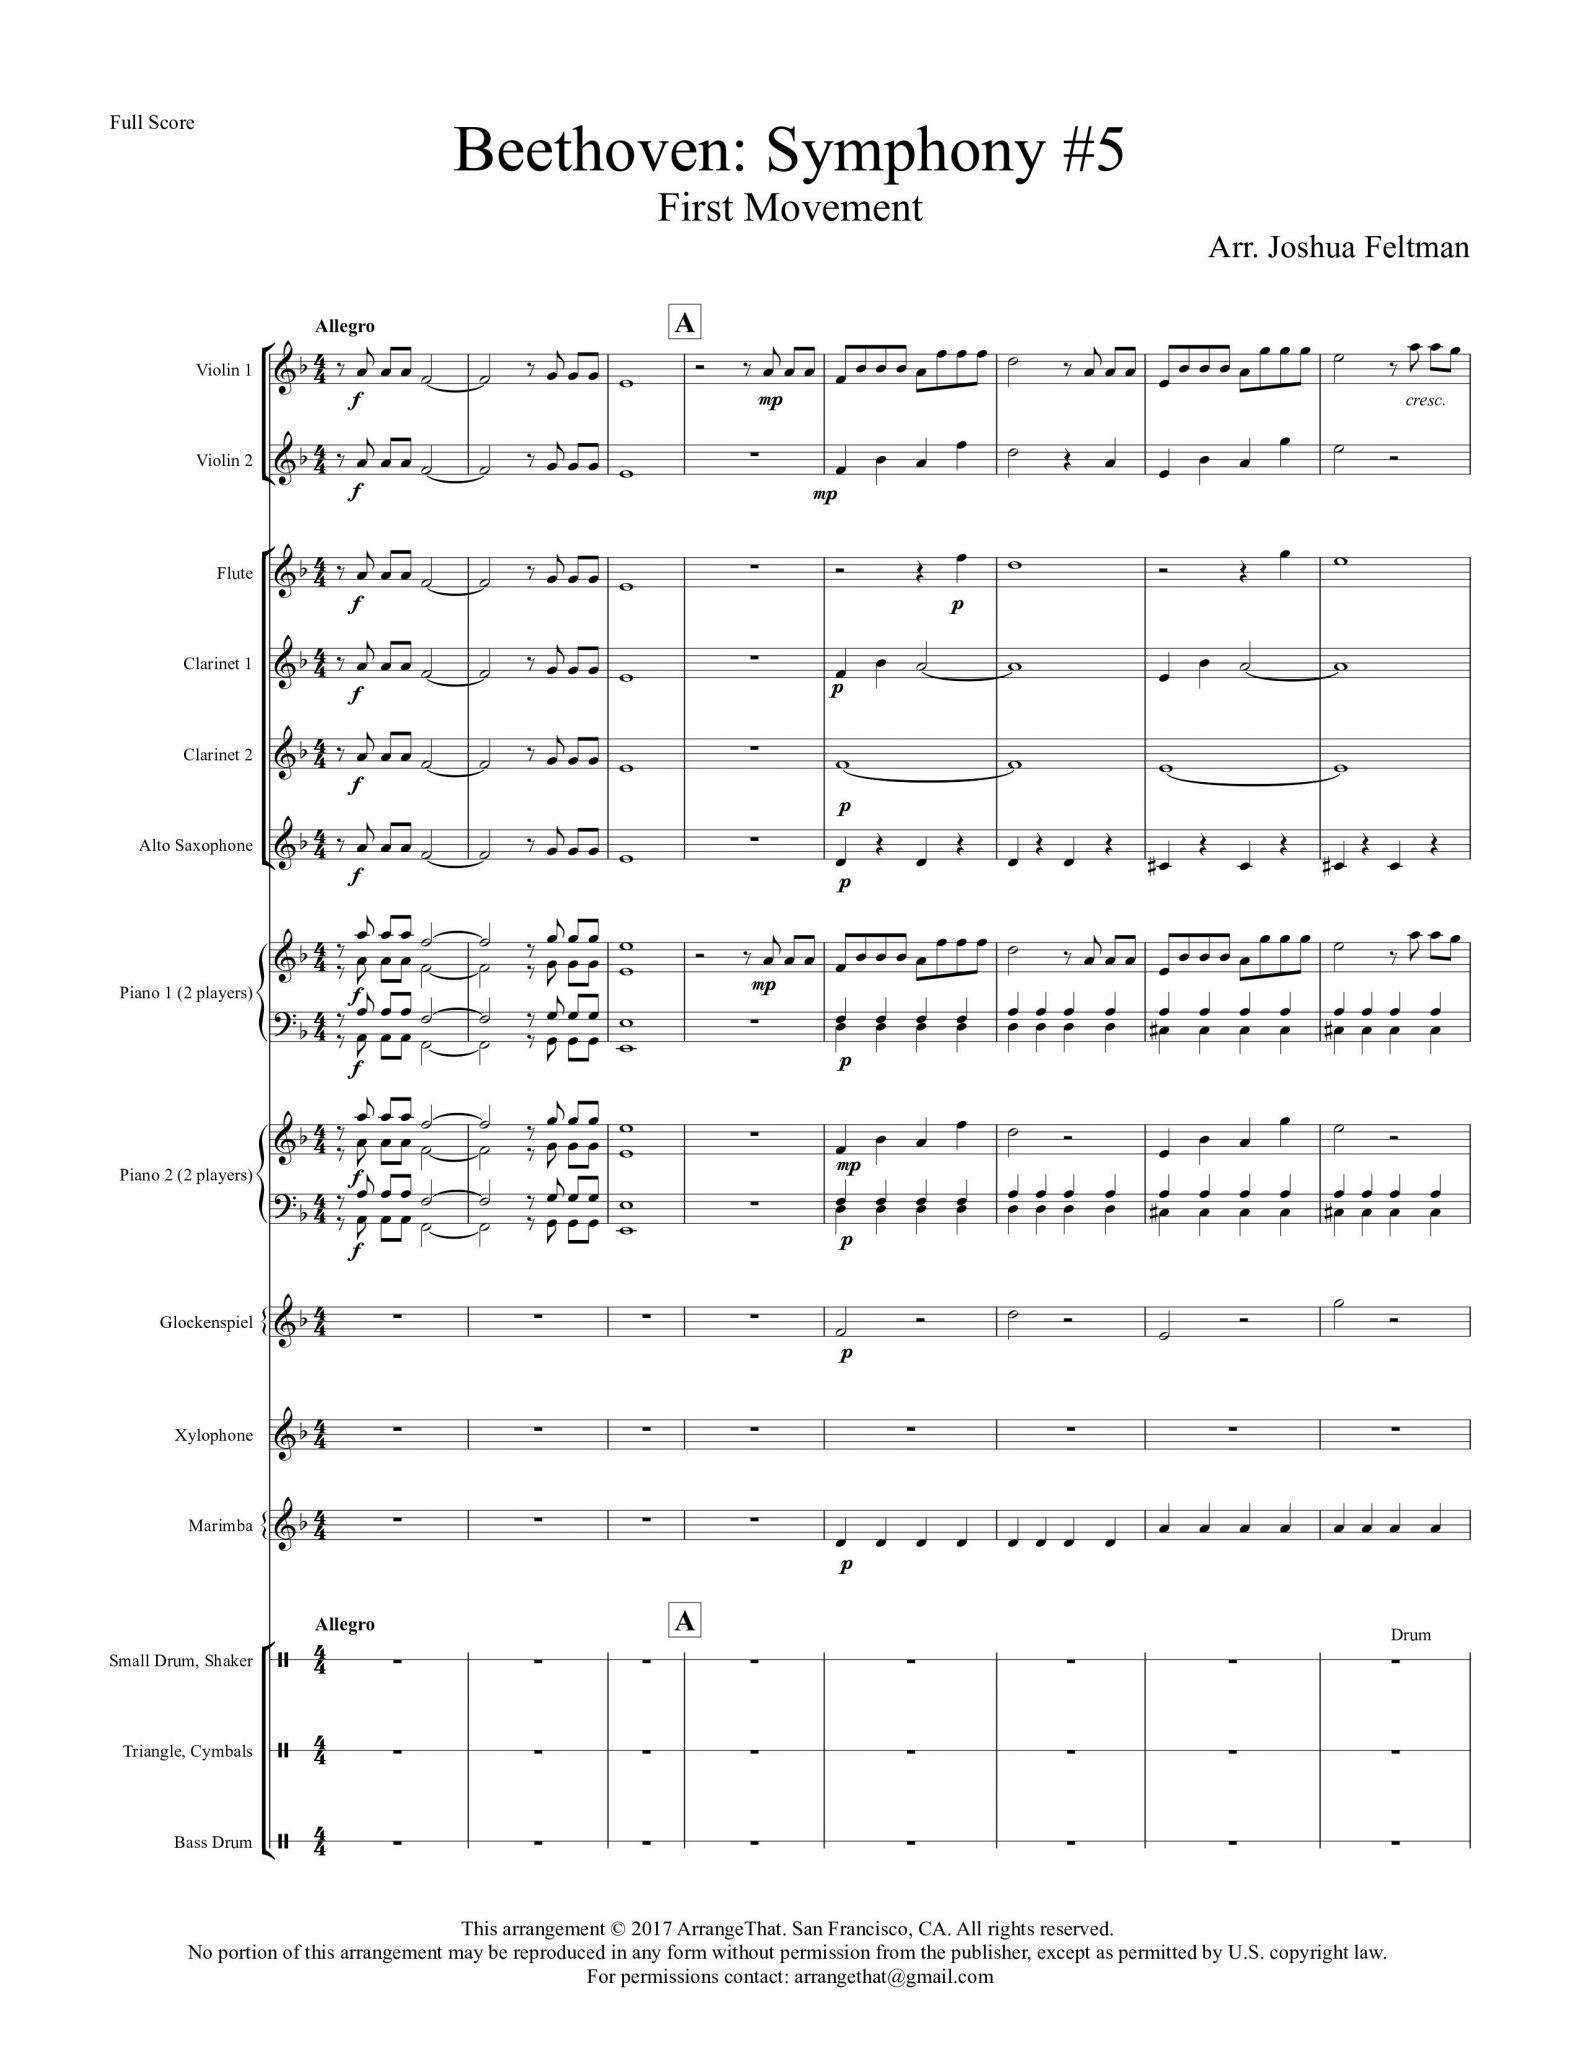 Beethoven: Symphony #5, First Movement